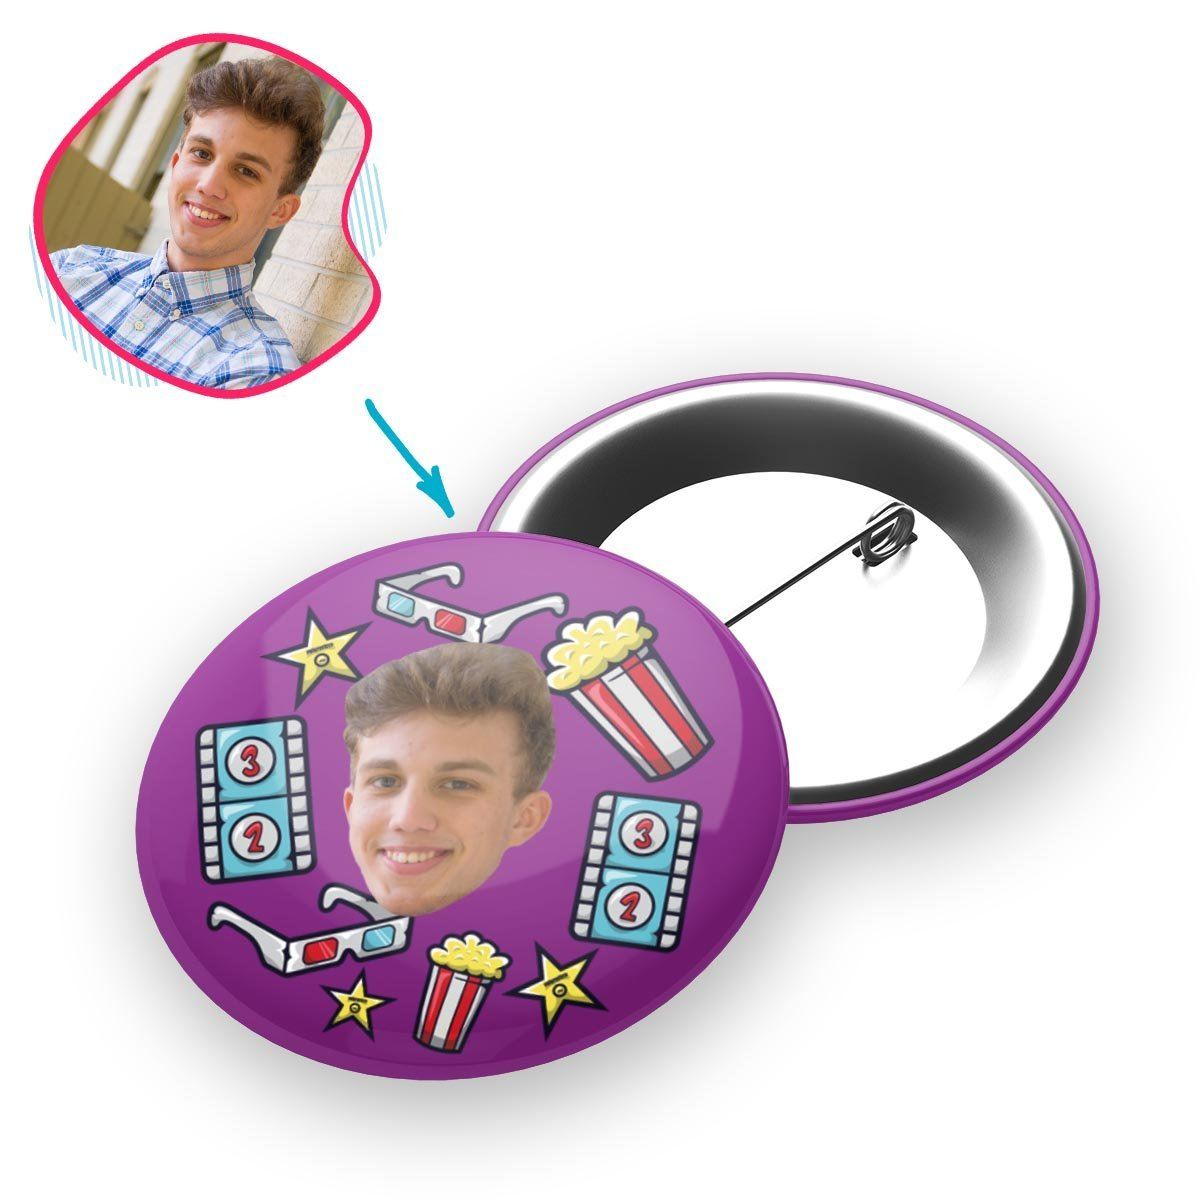 purple Movie pin personalized with photo of face printed on it